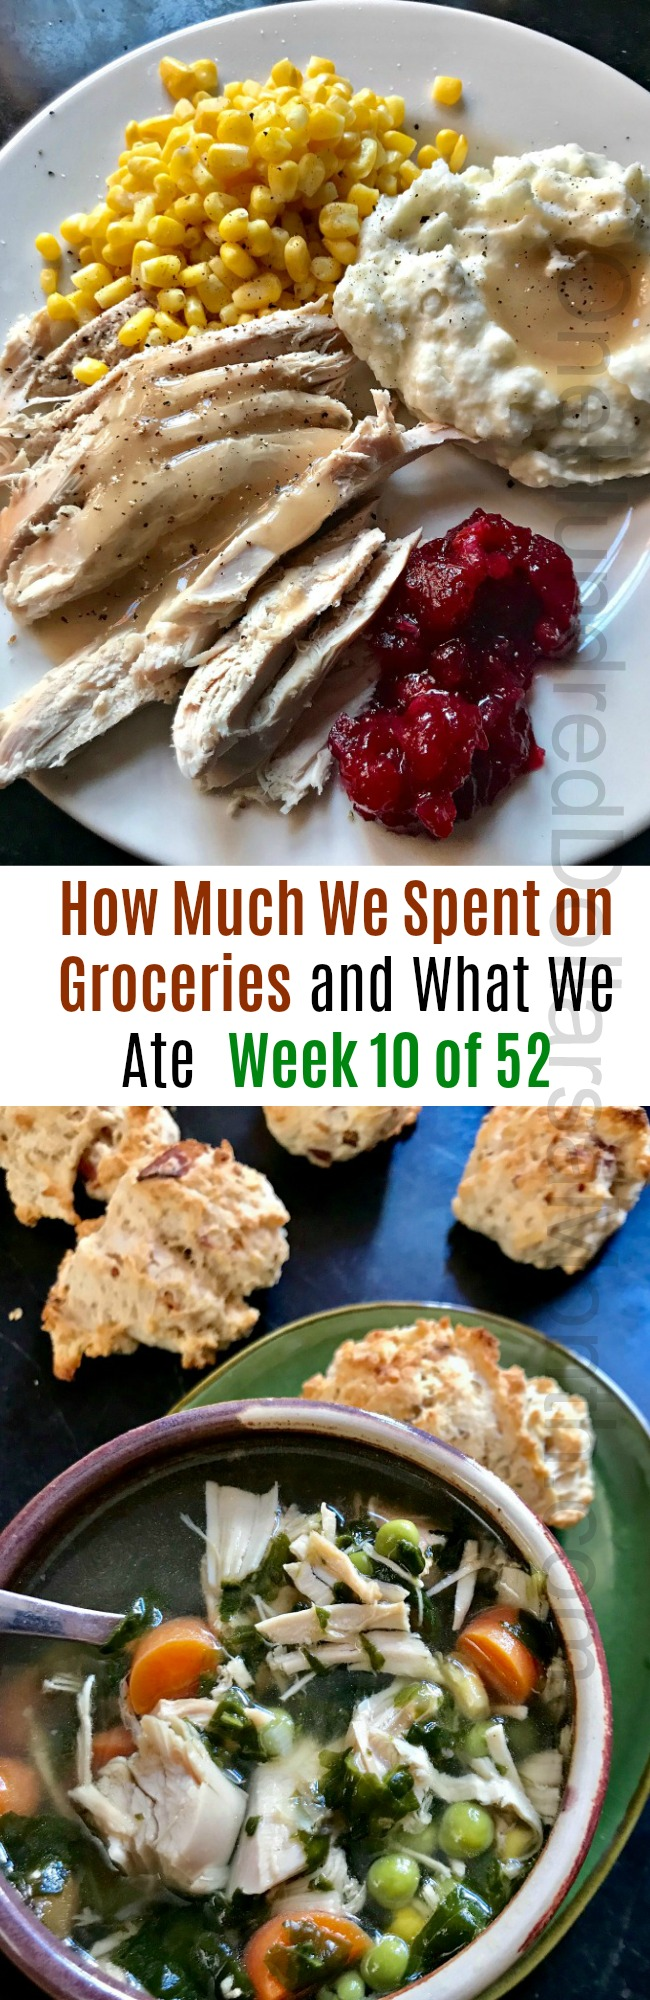 How Much We Spent on Groceries and What We Ate – Week 10 of 52